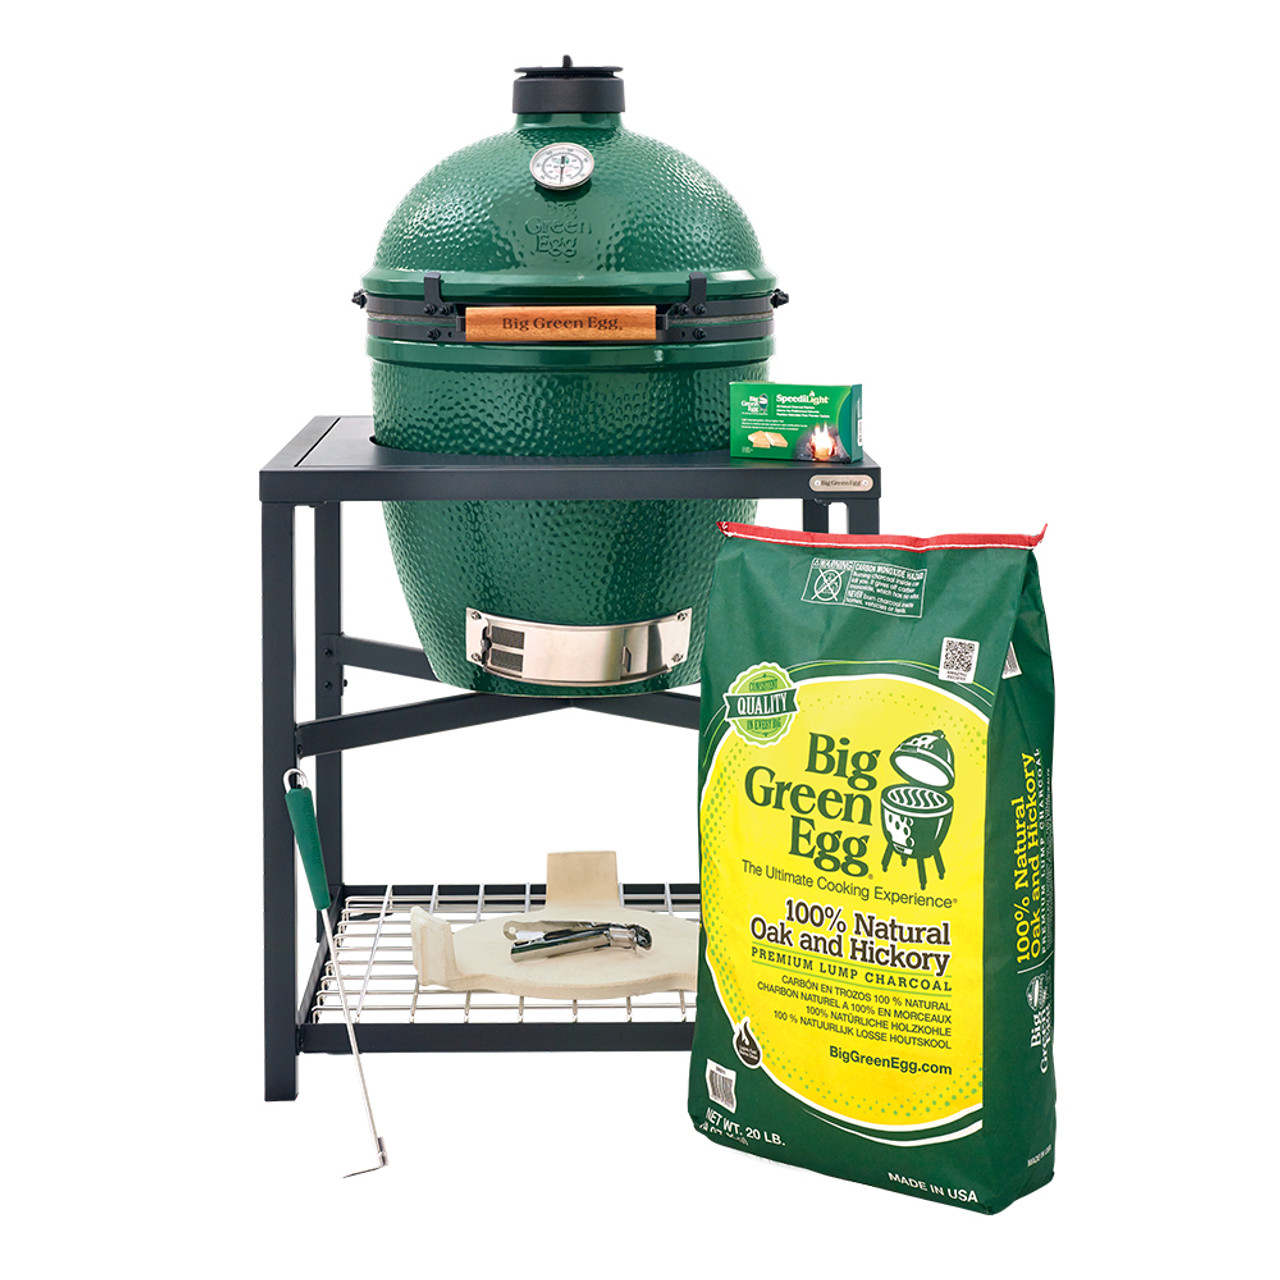 Large Big Green Egg in the modular nest stand and popular accessories: ash removal tool, convEGGtor, 20 pound bag of charcoal, cooking surface lifting tool,  new rEGGulator cap